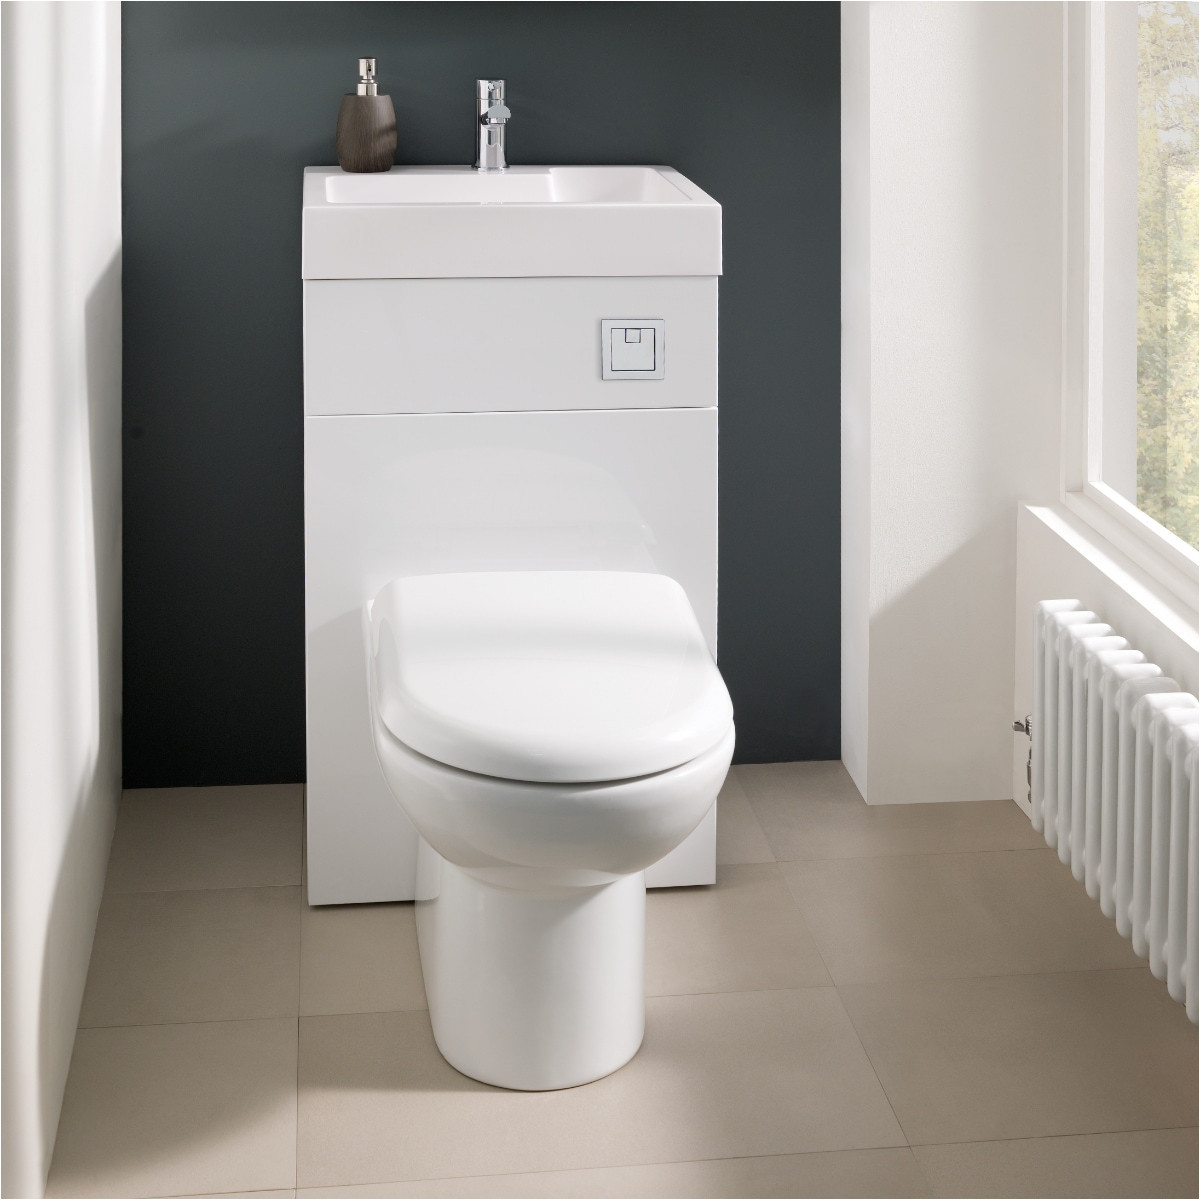 premier athena two in one vanity and toilet unit gloss white 500mm prc145cb bathroom supastore 32 jpg